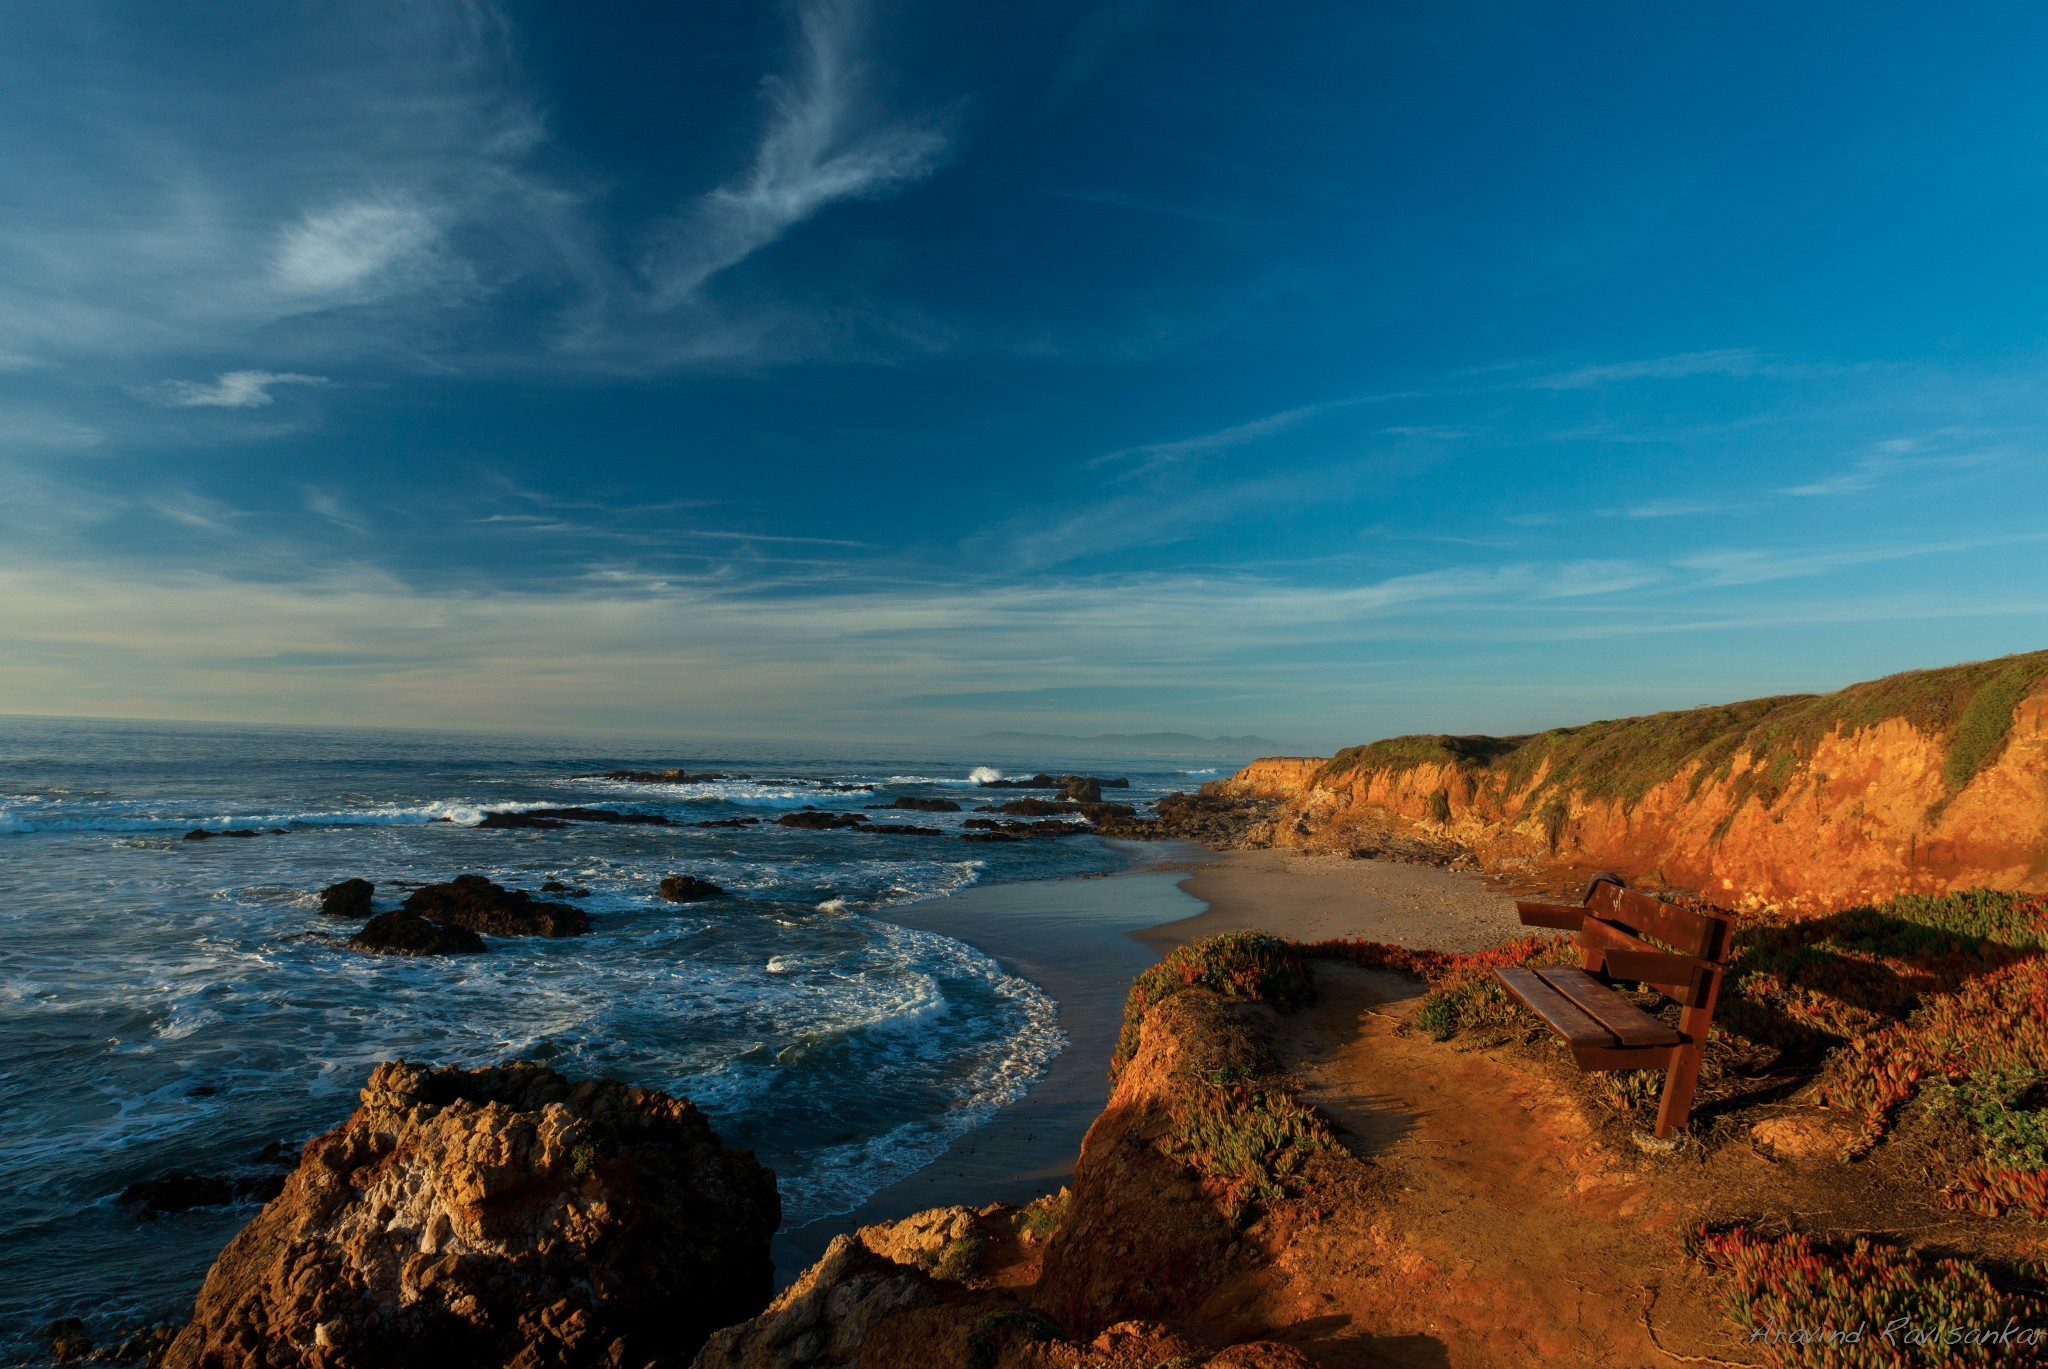 Coastline hd wallpaper background image 2048x1369 id 582904 wallpaper abyss - Chromecast backgrounds download ...